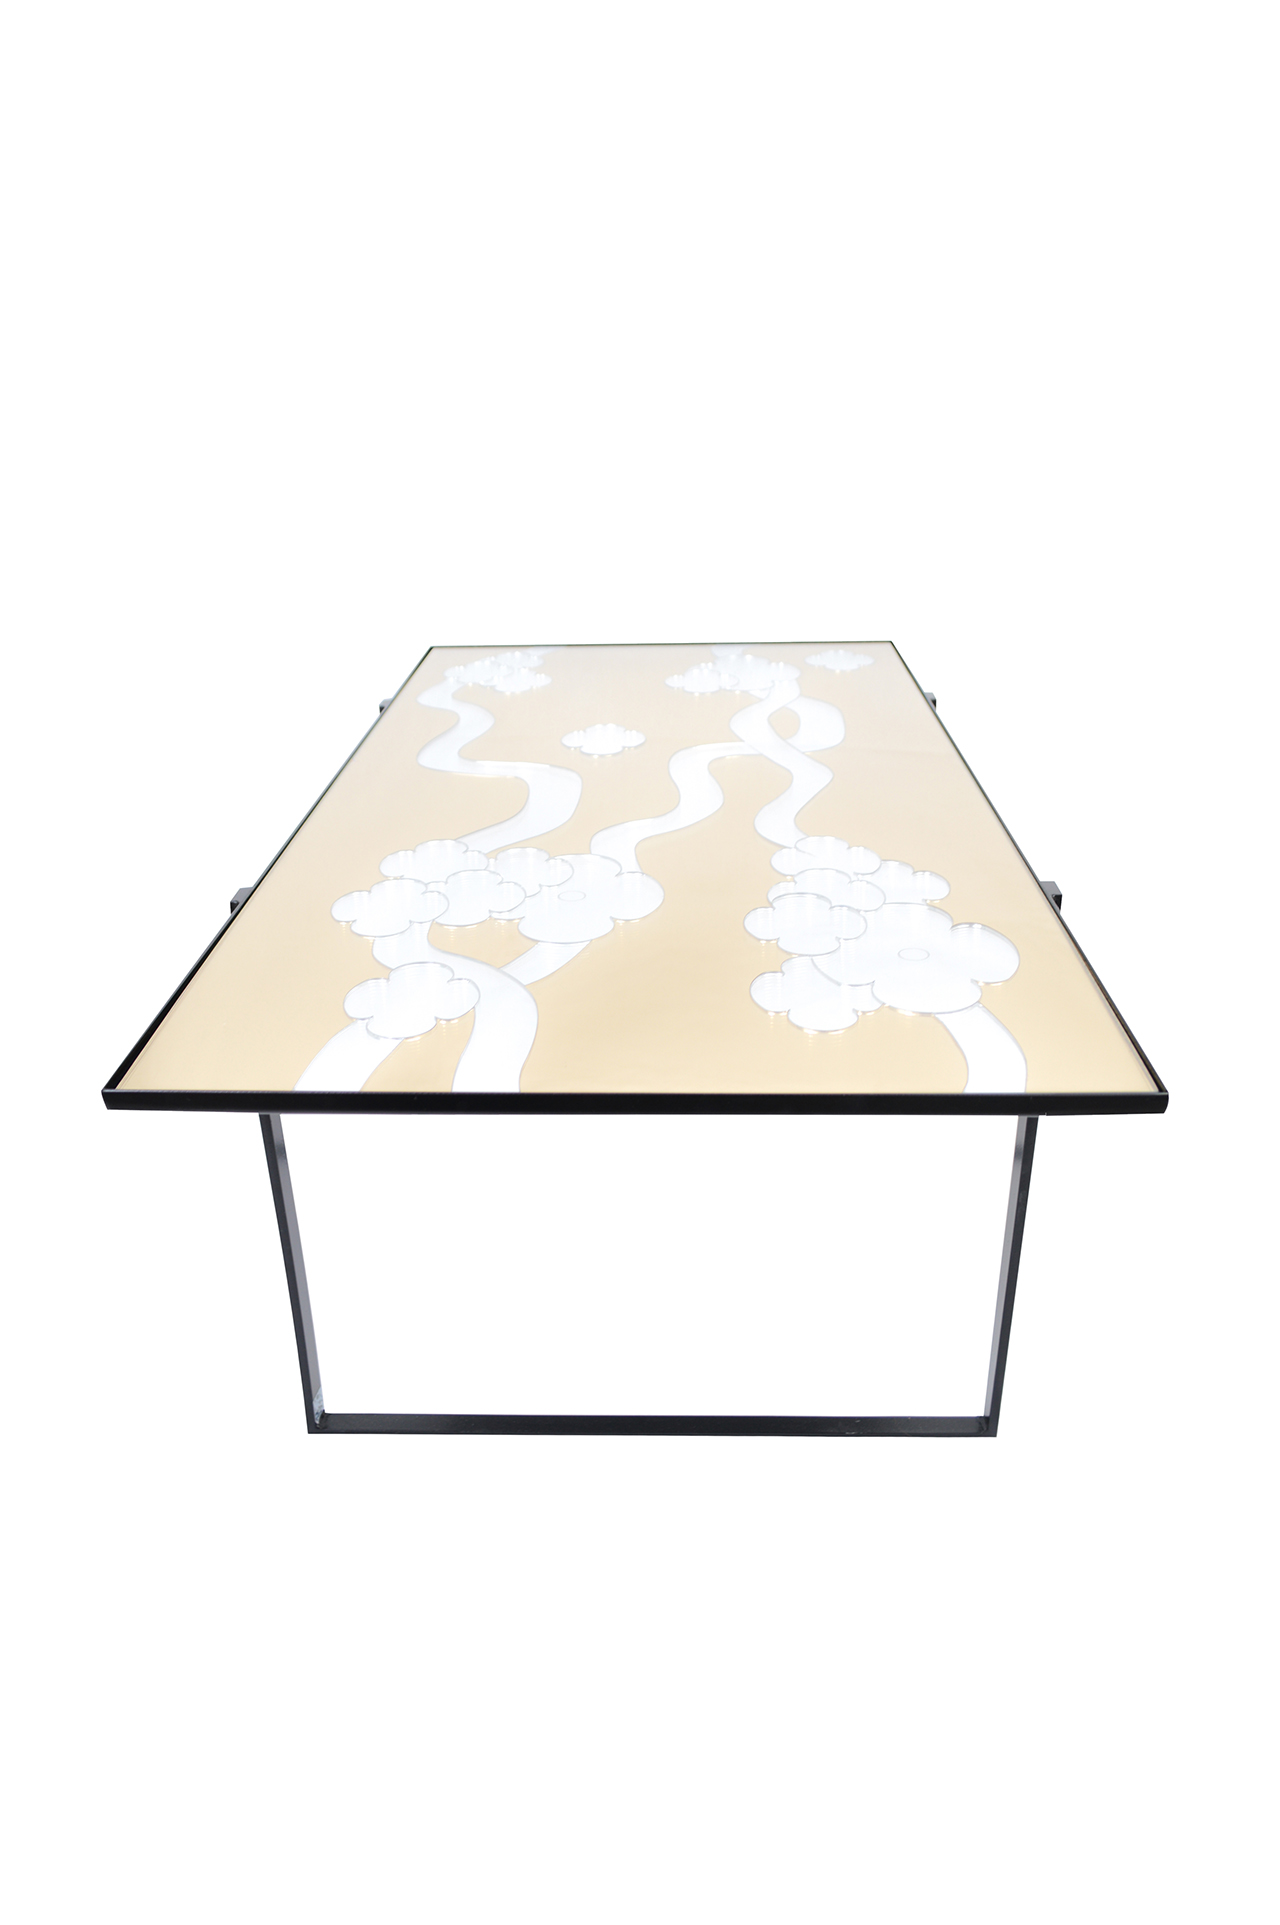 Table Reflection 1